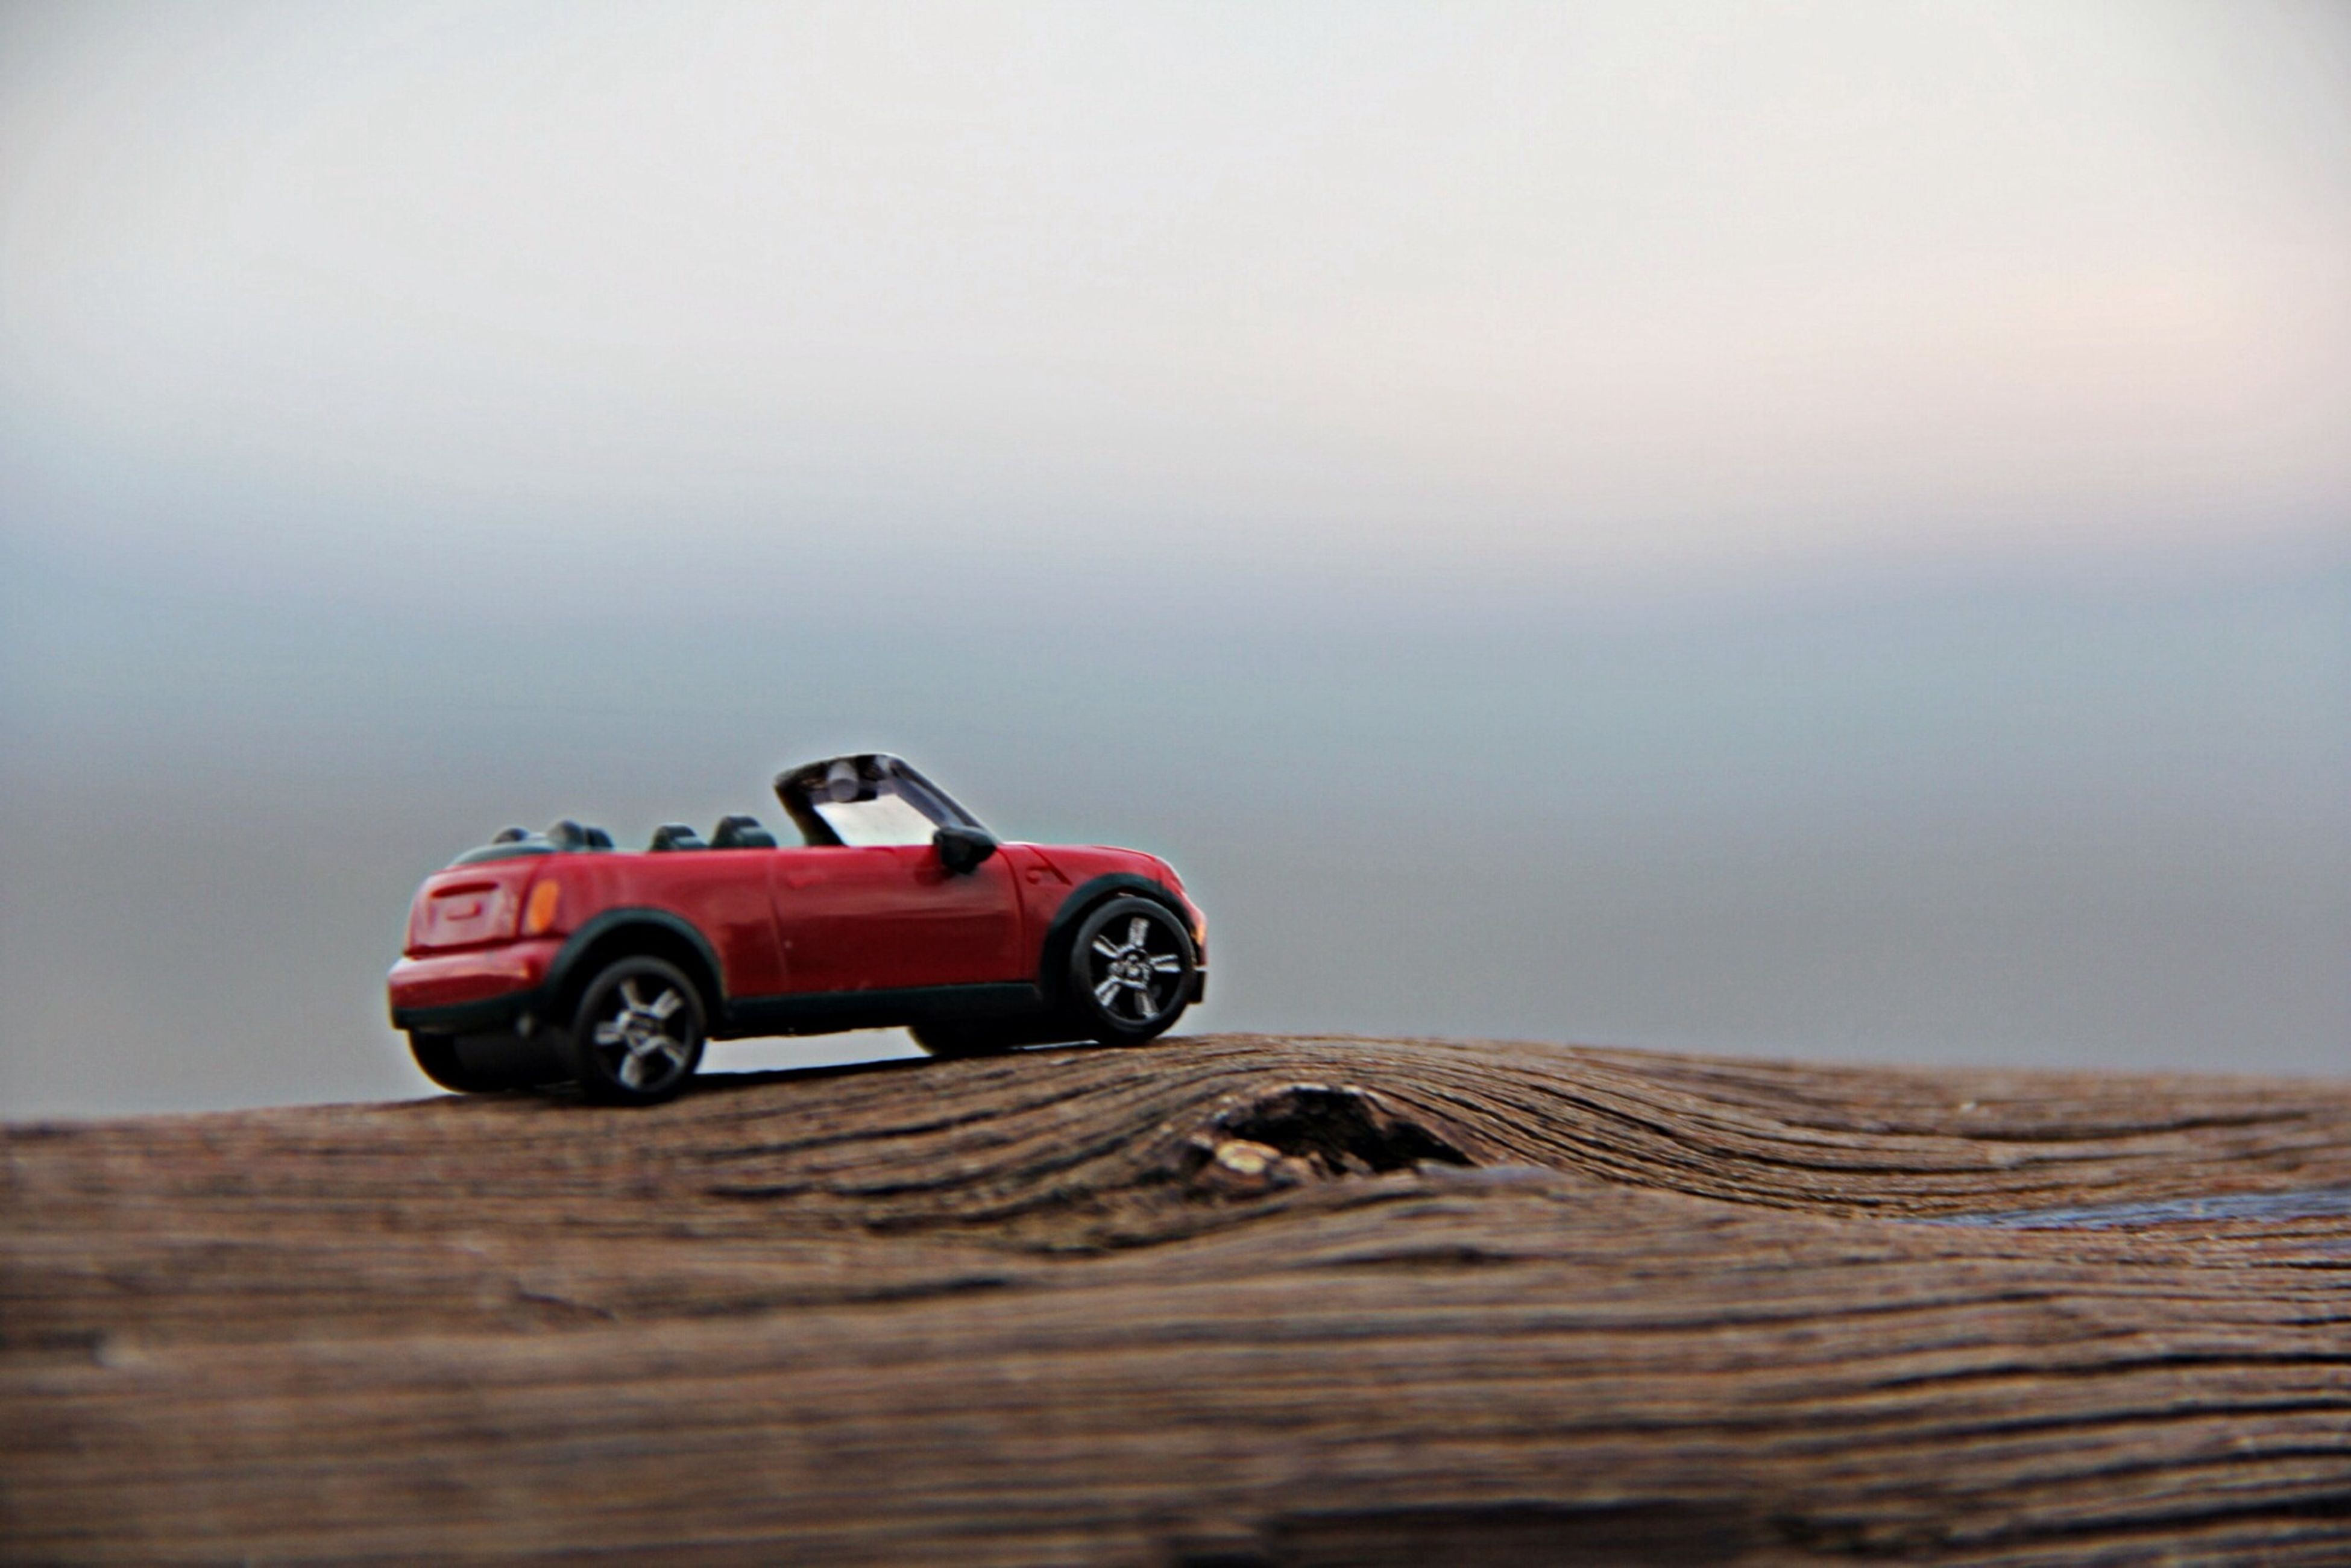 wood - material, transportation, sky, selective focus, land vehicle, clear sky, mode of transport, day, focus on foreground, wooden, car, nature, sand, tranquility, outdoors, tranquil scene, wood, copy space, surface level, travel